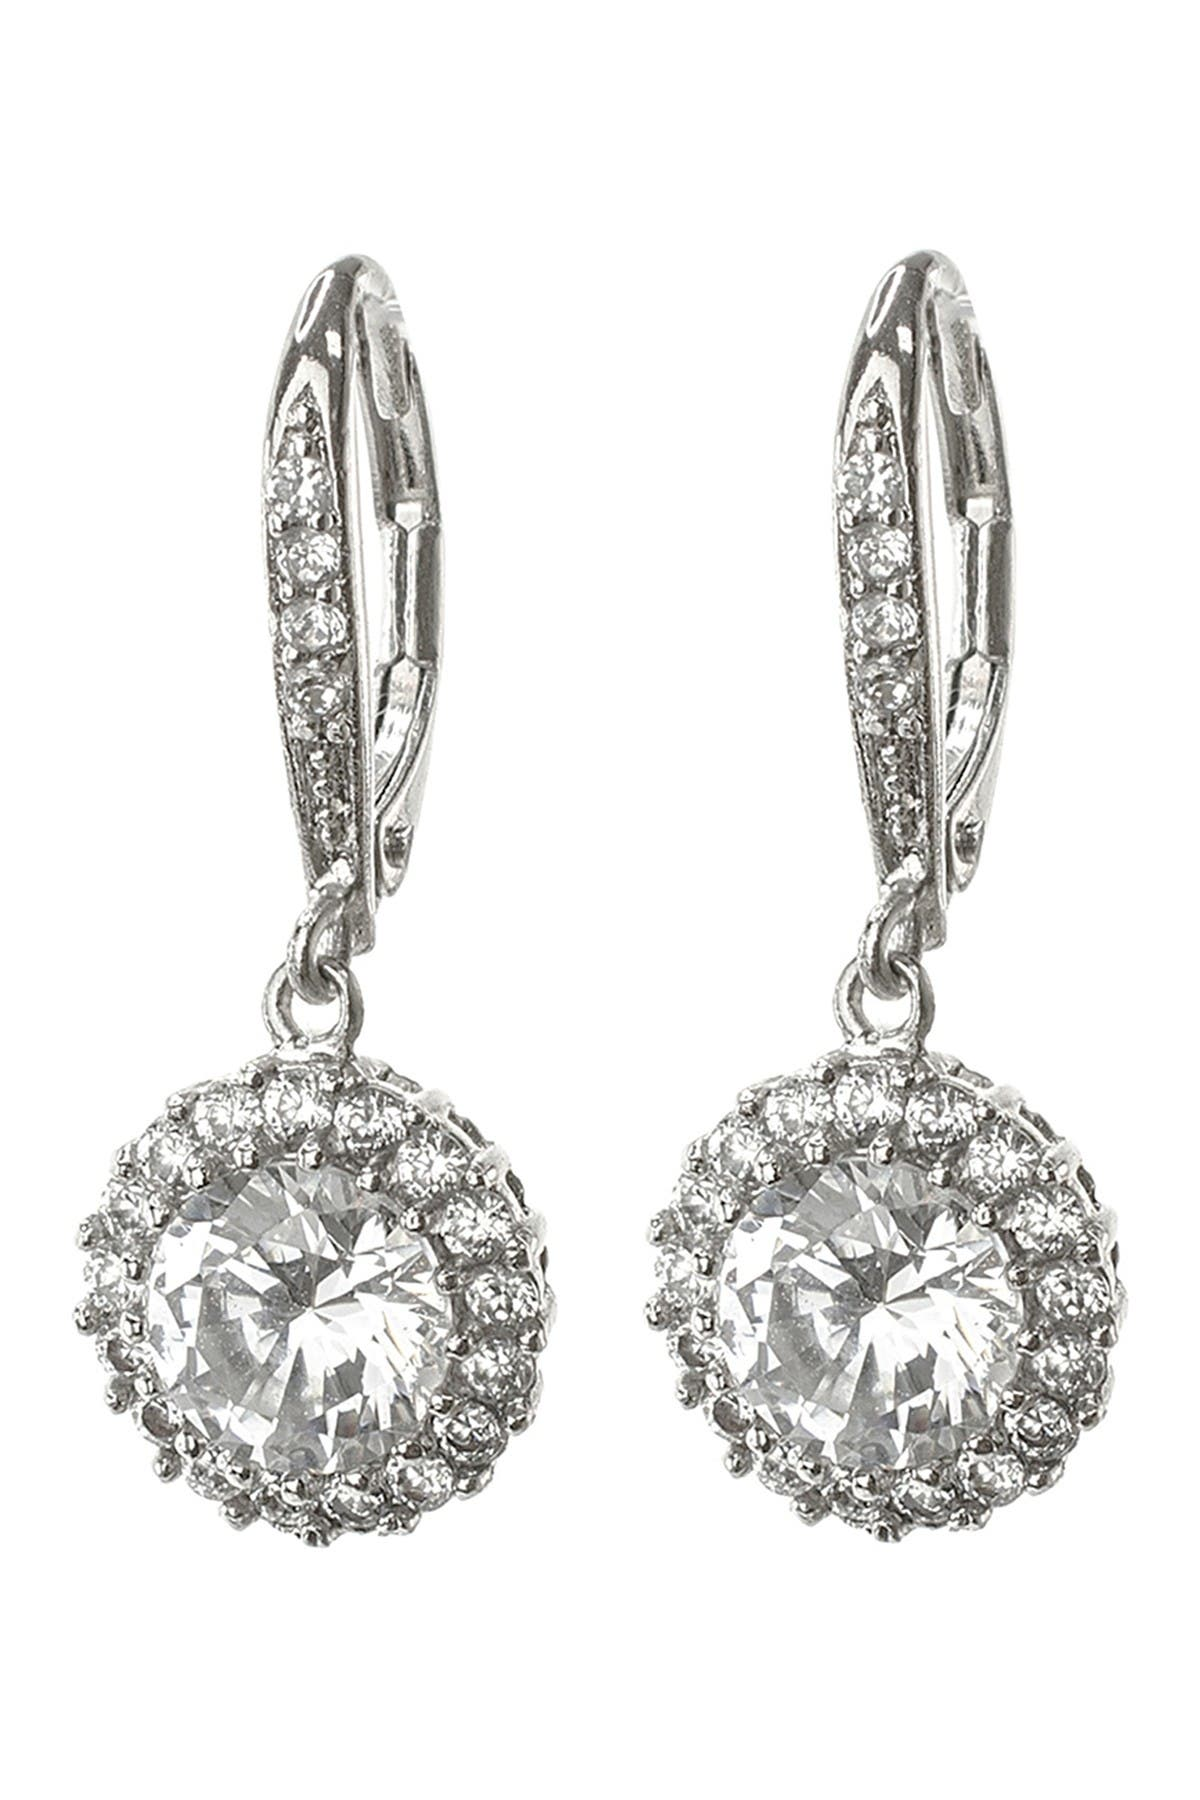 Image of CZ By Kenneth Jay Lane CZ Round Drop Earrings